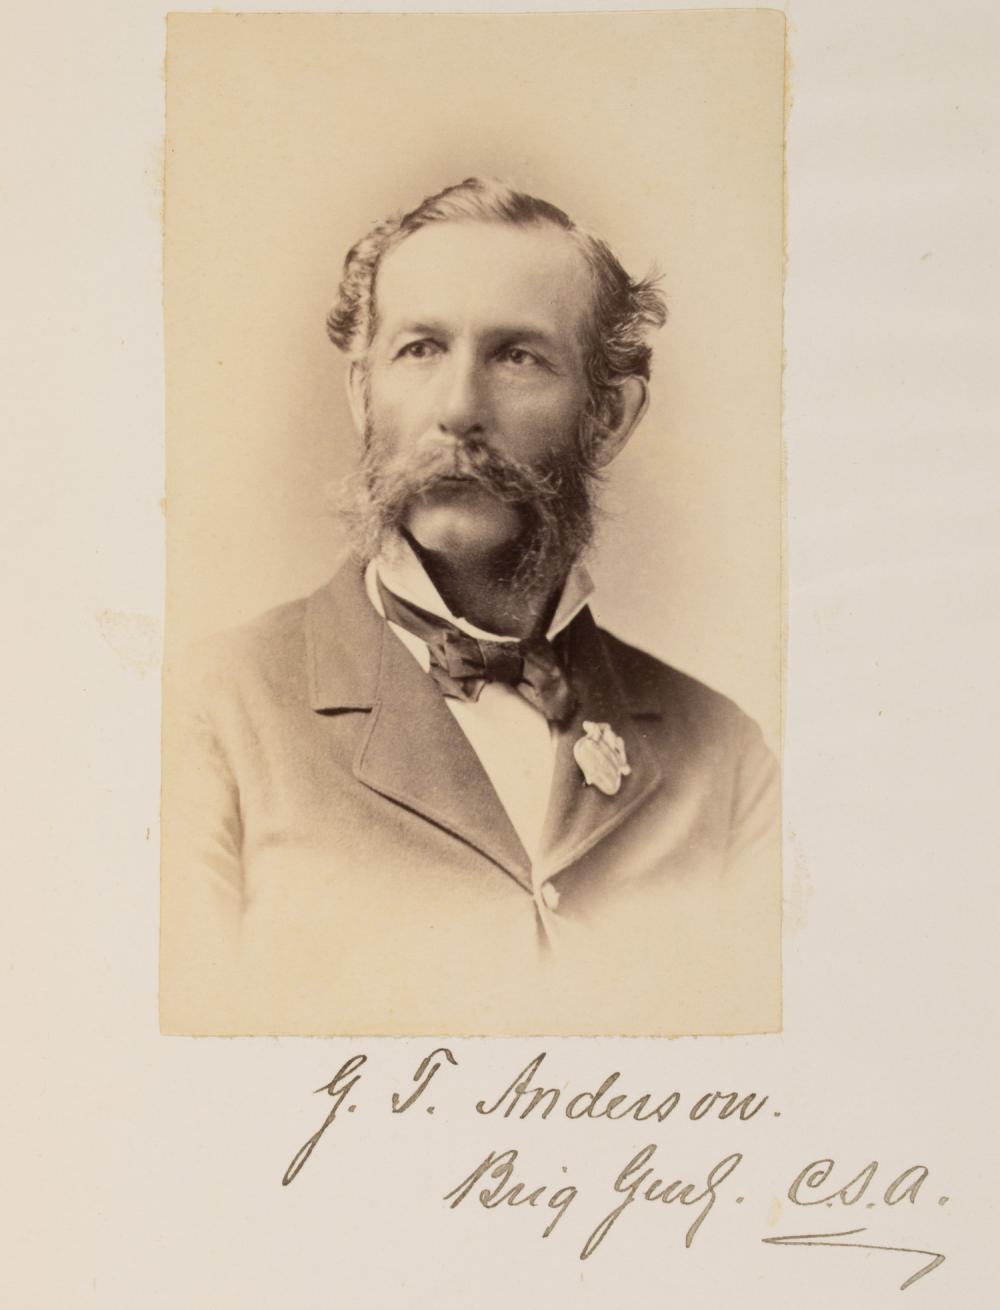 GEORGE T. ANDERSON